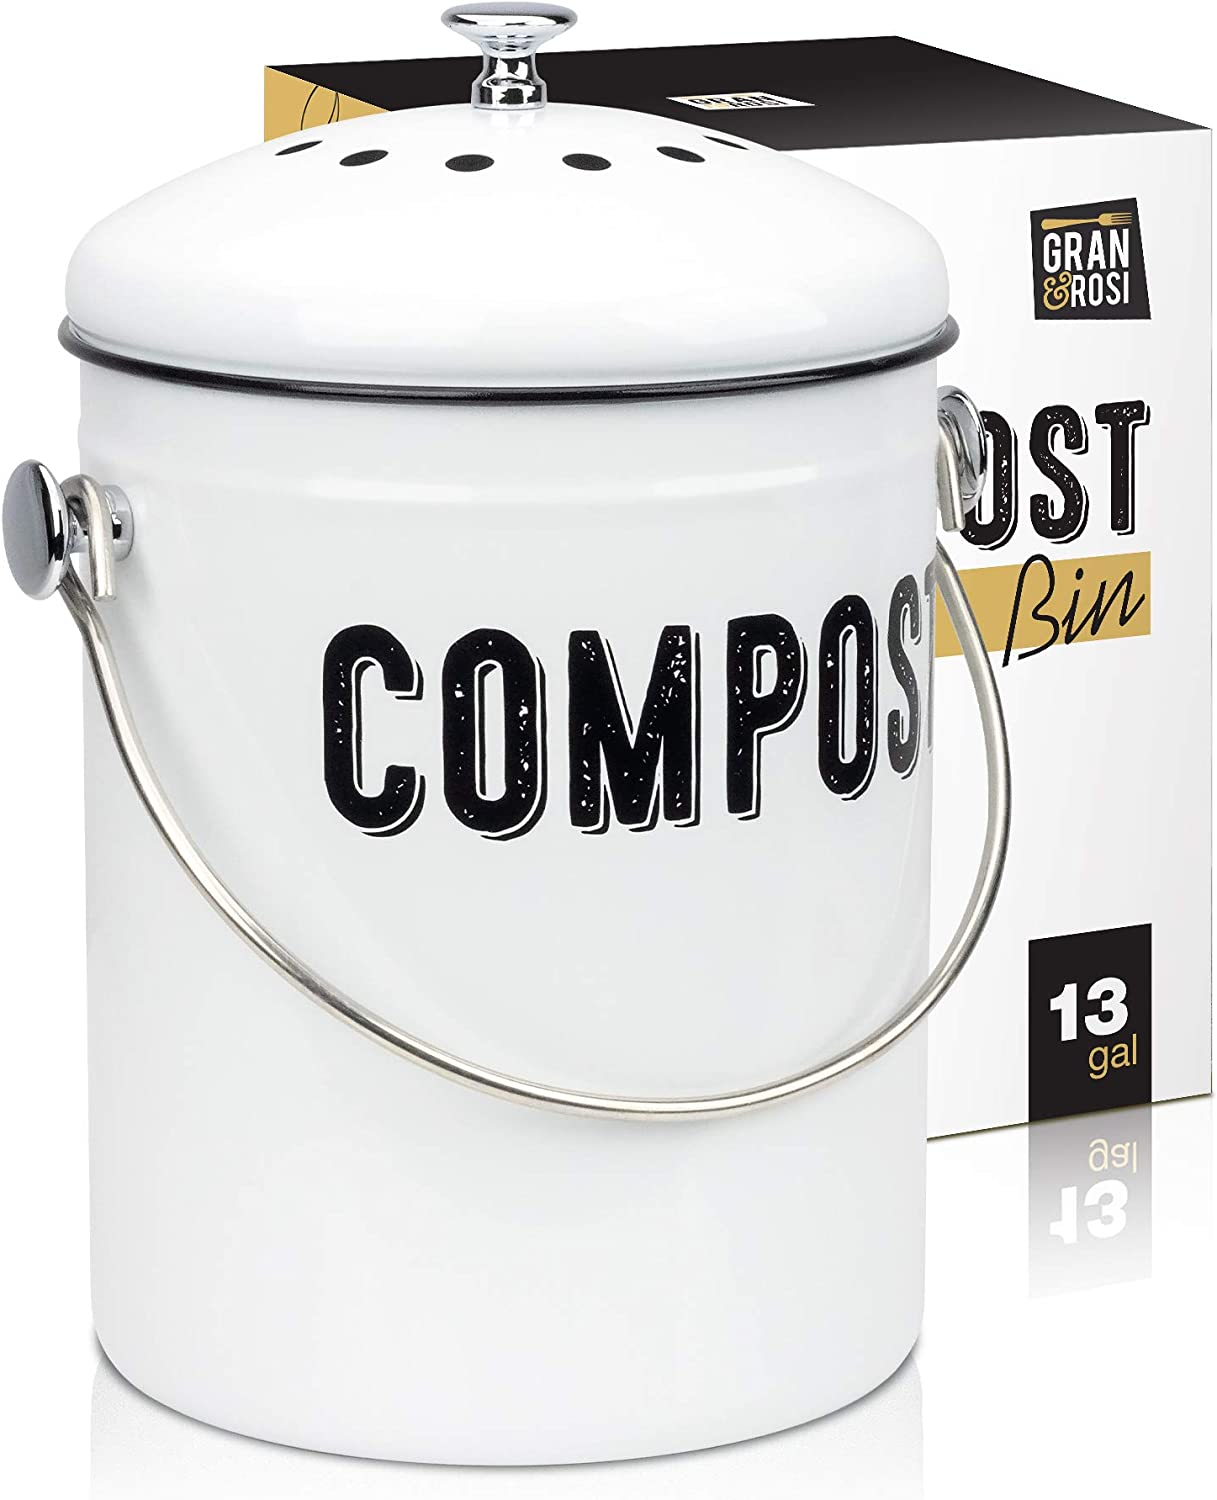 Granrosi Stylish Farmhouse Kitchen Compost Bin - 100% Rust Proof w/Non Smell Filters - Easy Clean 1.3 Gallon Container Looks Fabulous on Your Kitchen Countertop : Garden & Outdoor